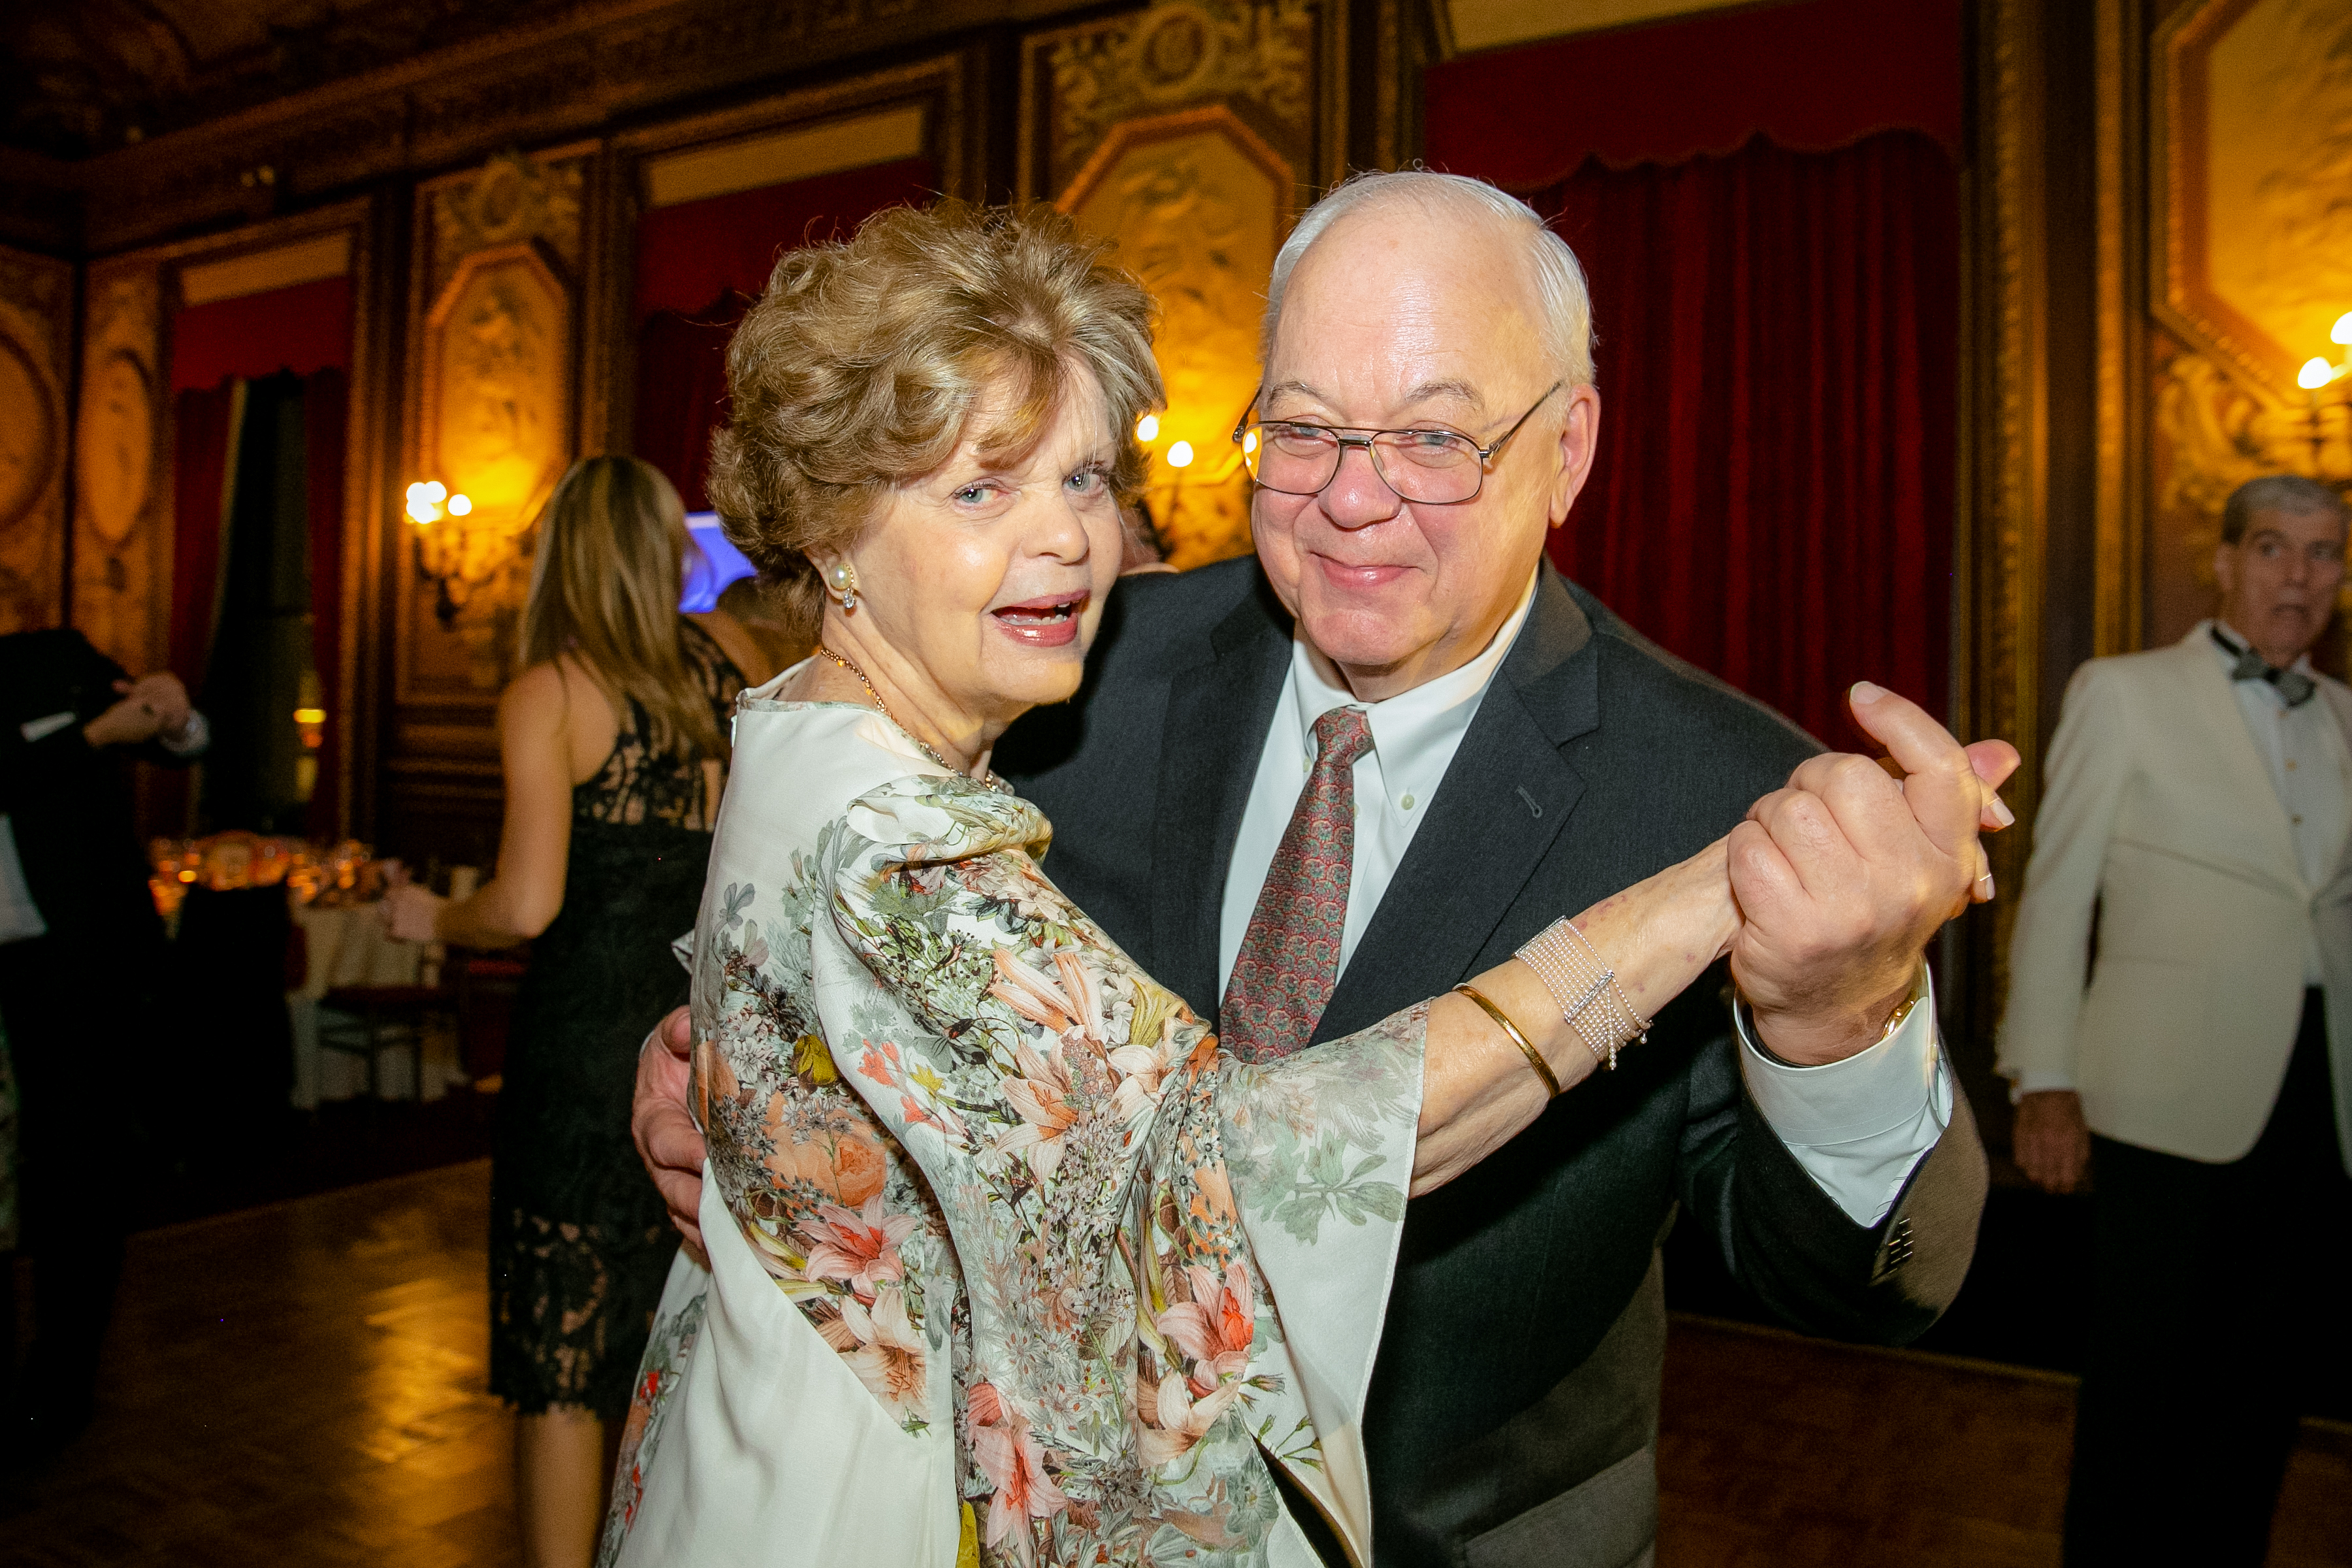 Dr. Legato dancing with a guest during the Gala